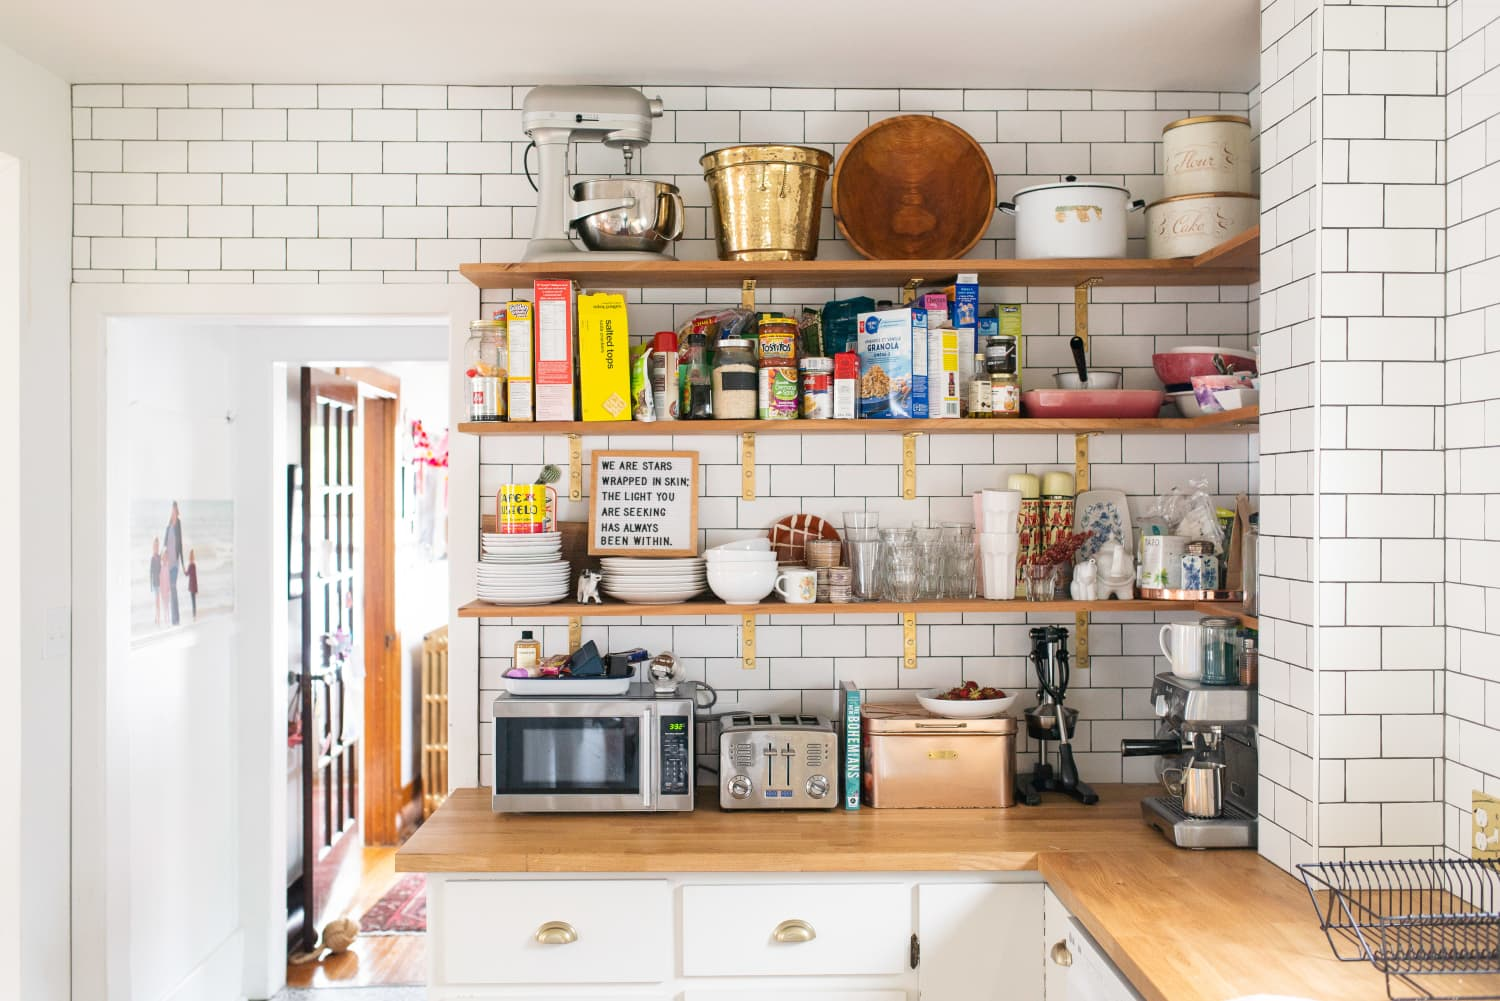 6 Little Ways You Can Spend More Sustainably at Home (and Save Money, Too)